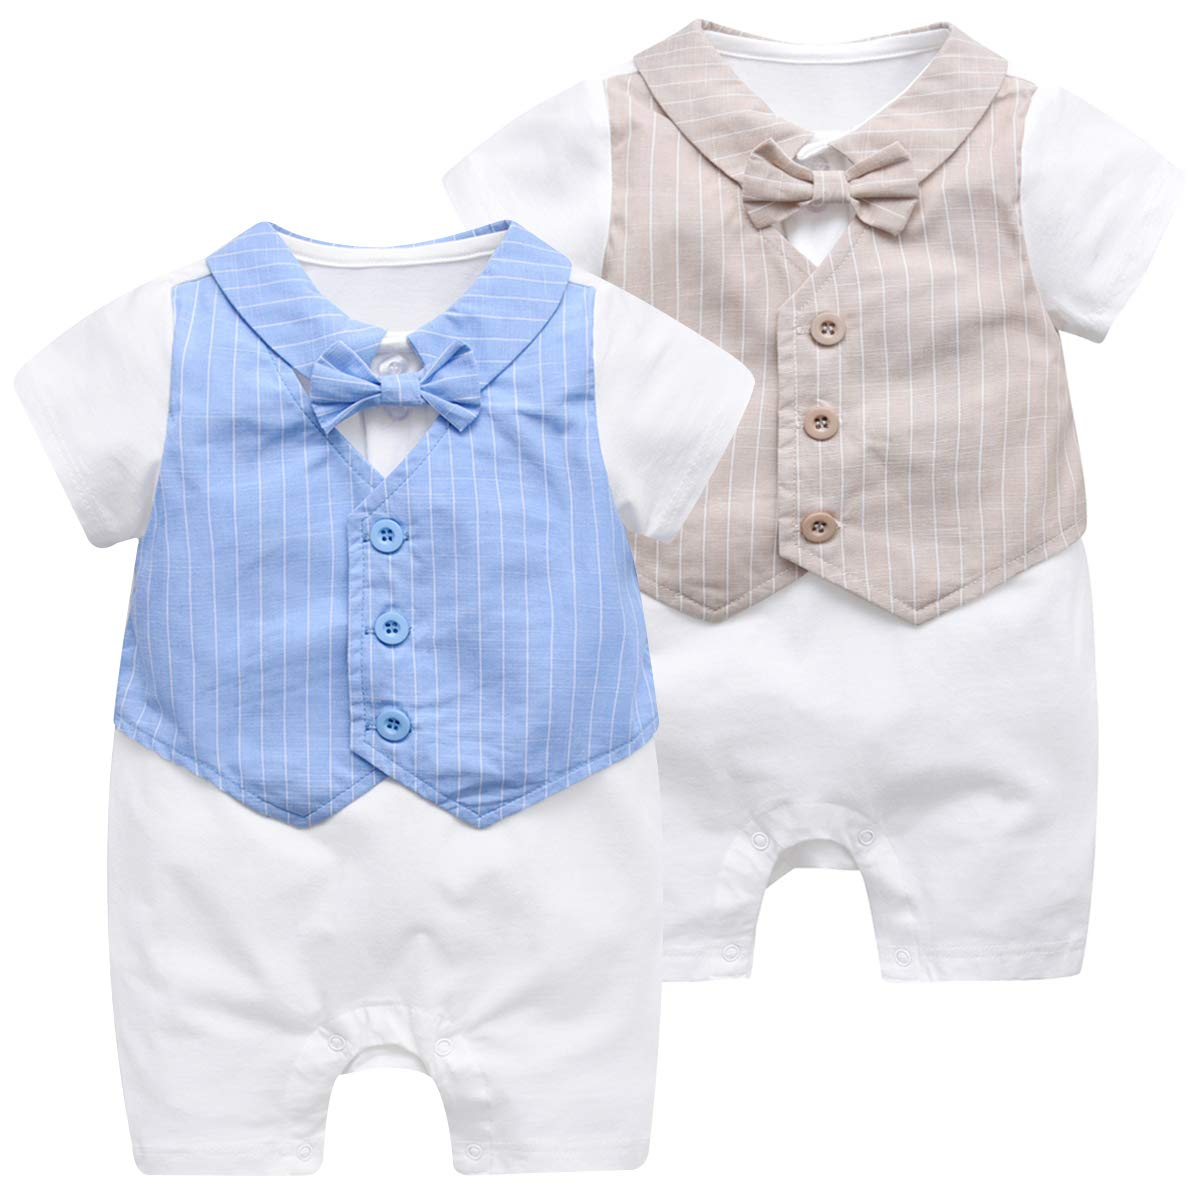 Kanodan Baby Toddler Boys Striped Gentleman Suits Summer Onesies Jumpsuit Outfits